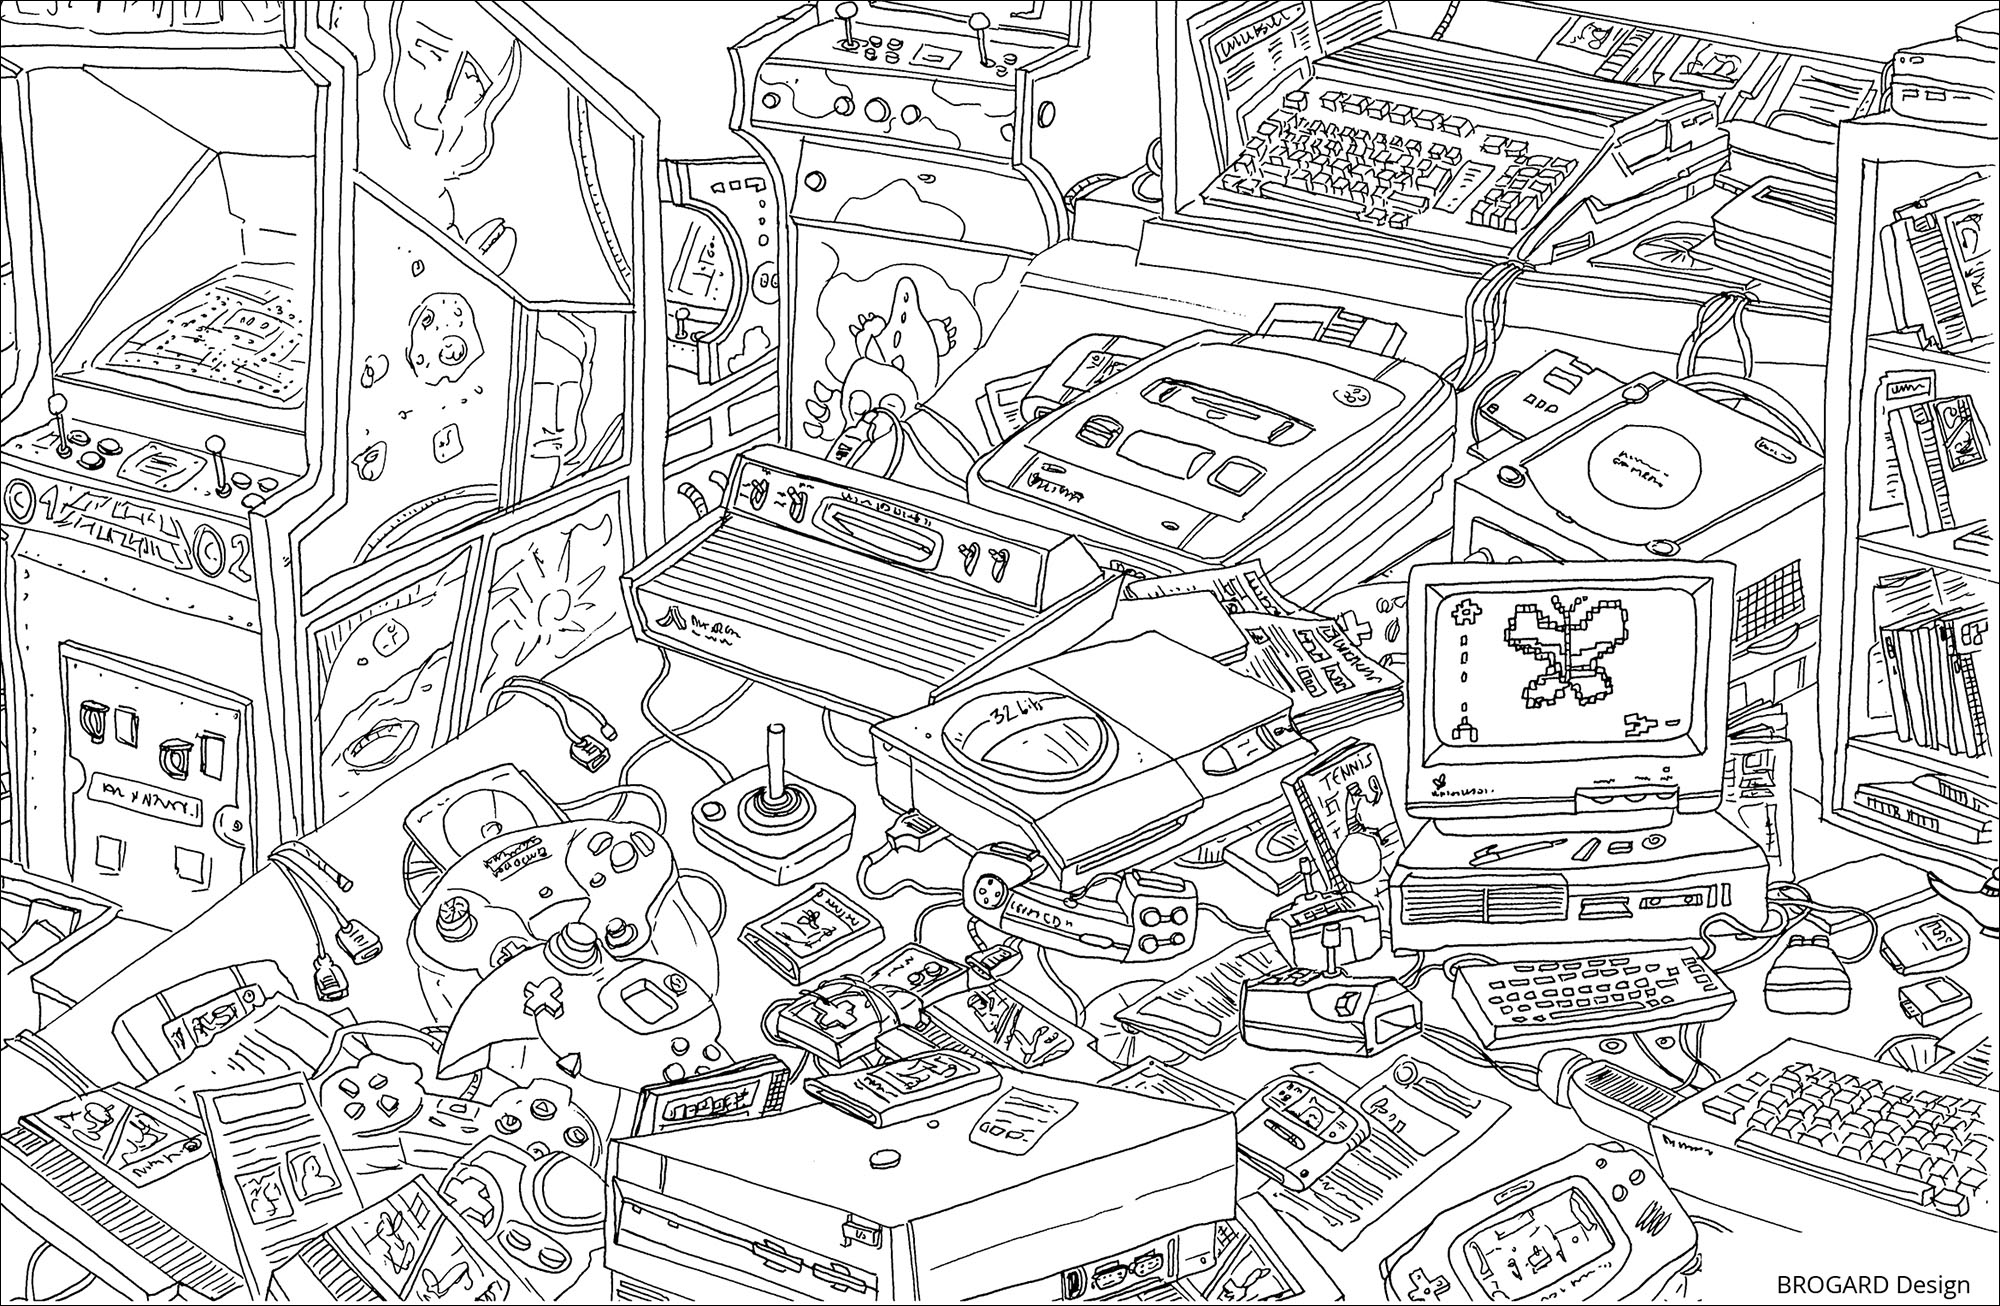 Drawing with little details inspiring by 90's video games